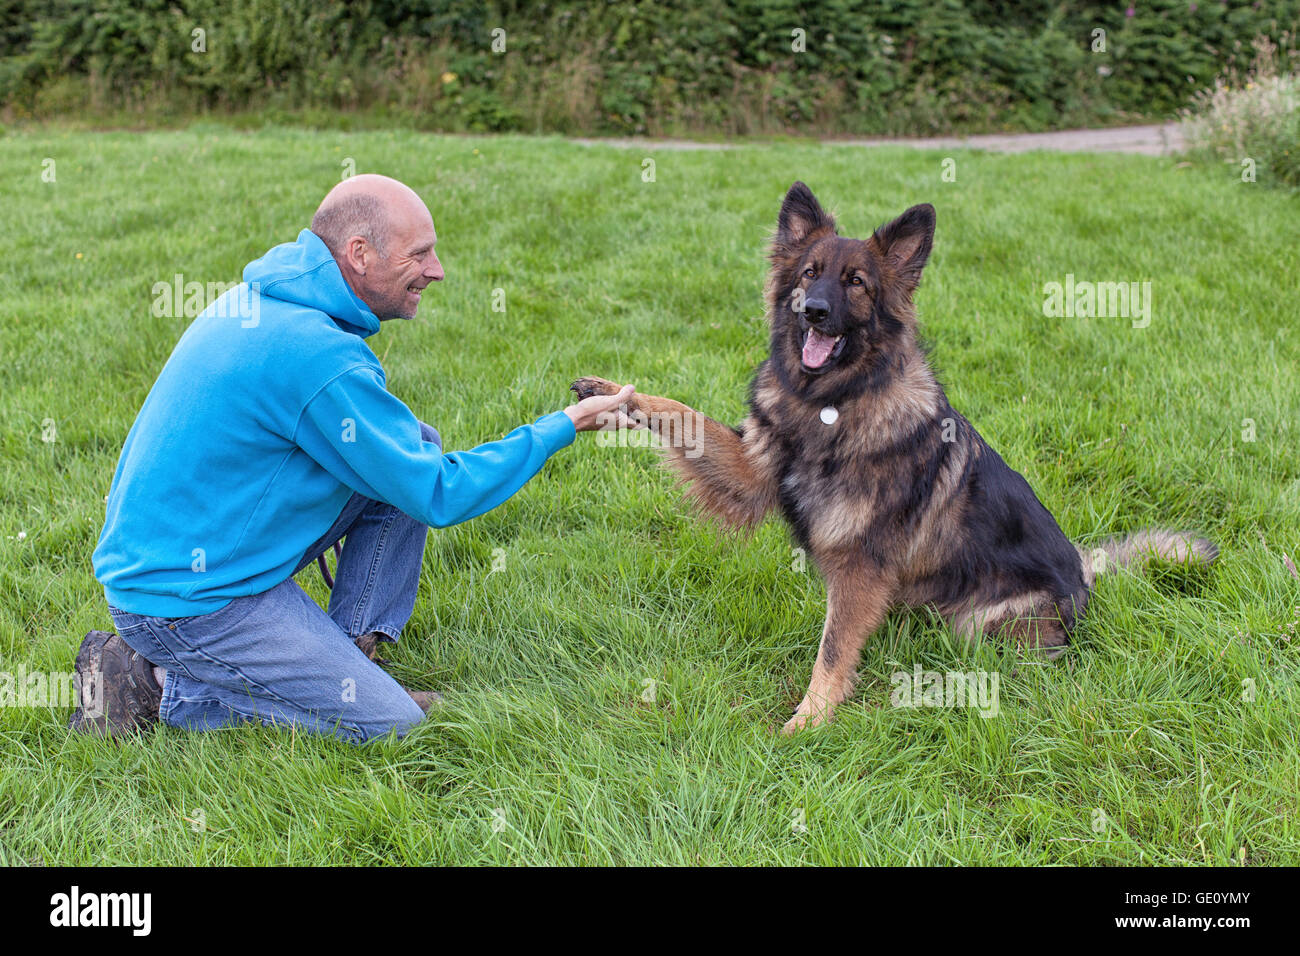 German Shepherd Dog shaking this owners hand. They are outside on grass doing training. - Stock Image